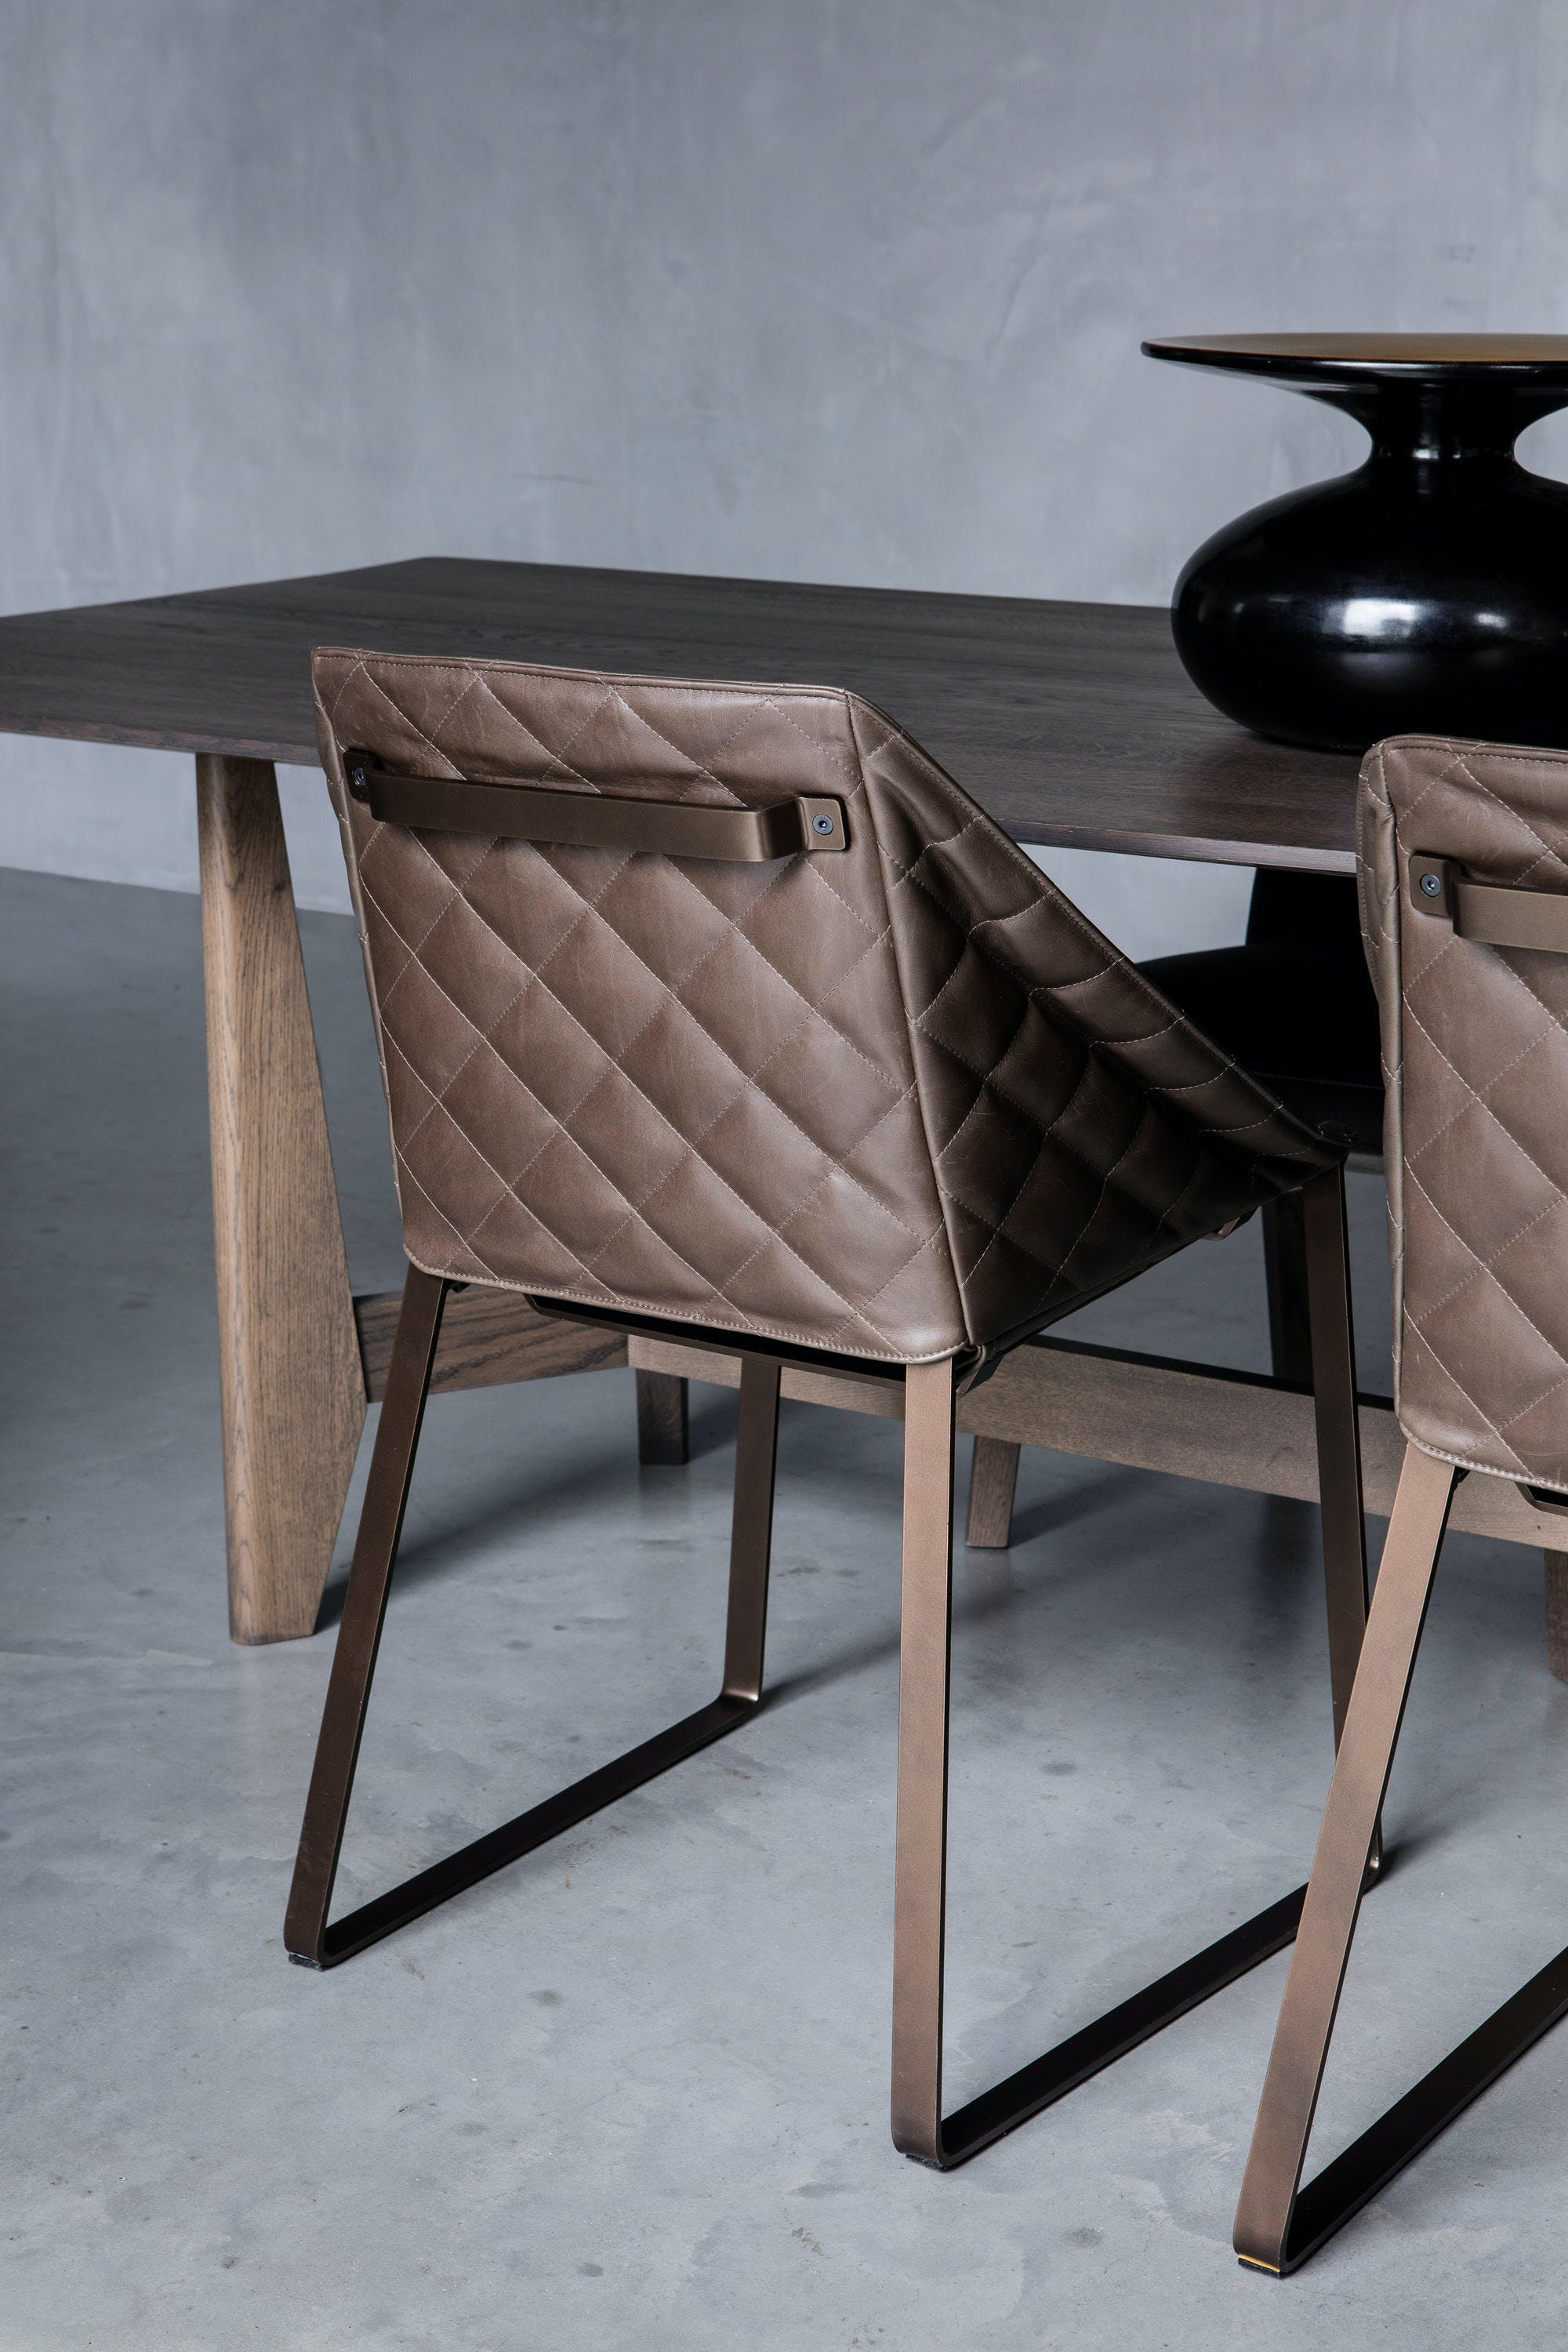 Kekke Chair by Piet Boon, now available at Haute Living